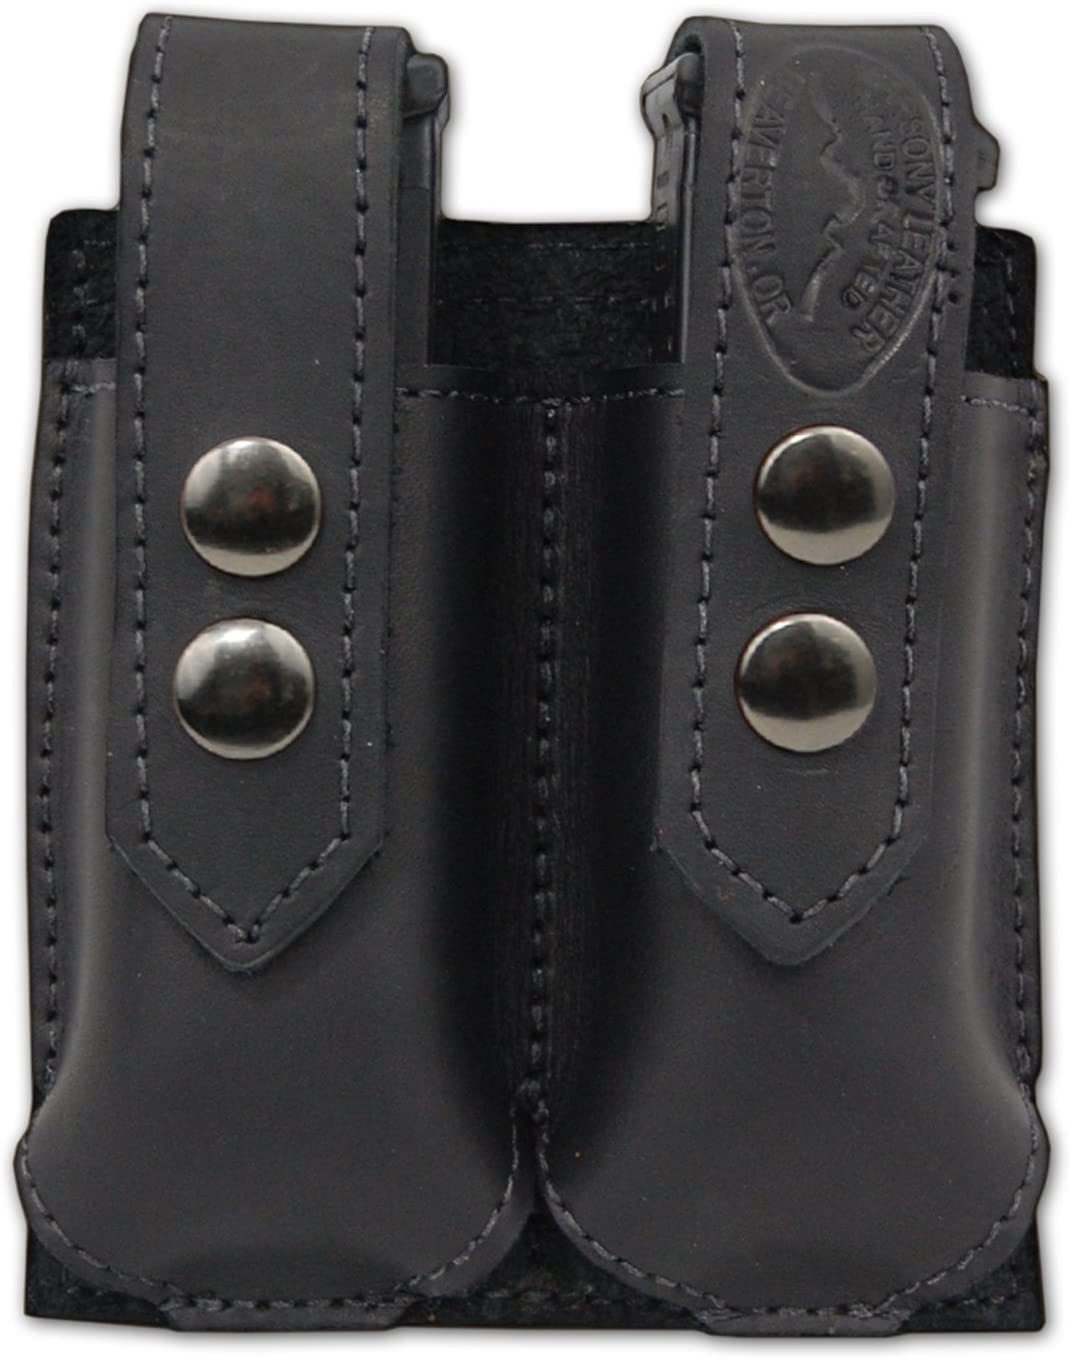 Barsony OFFer New Black Max 41% OFF Leather Double Ultra-C Magazine .380 for Pouch